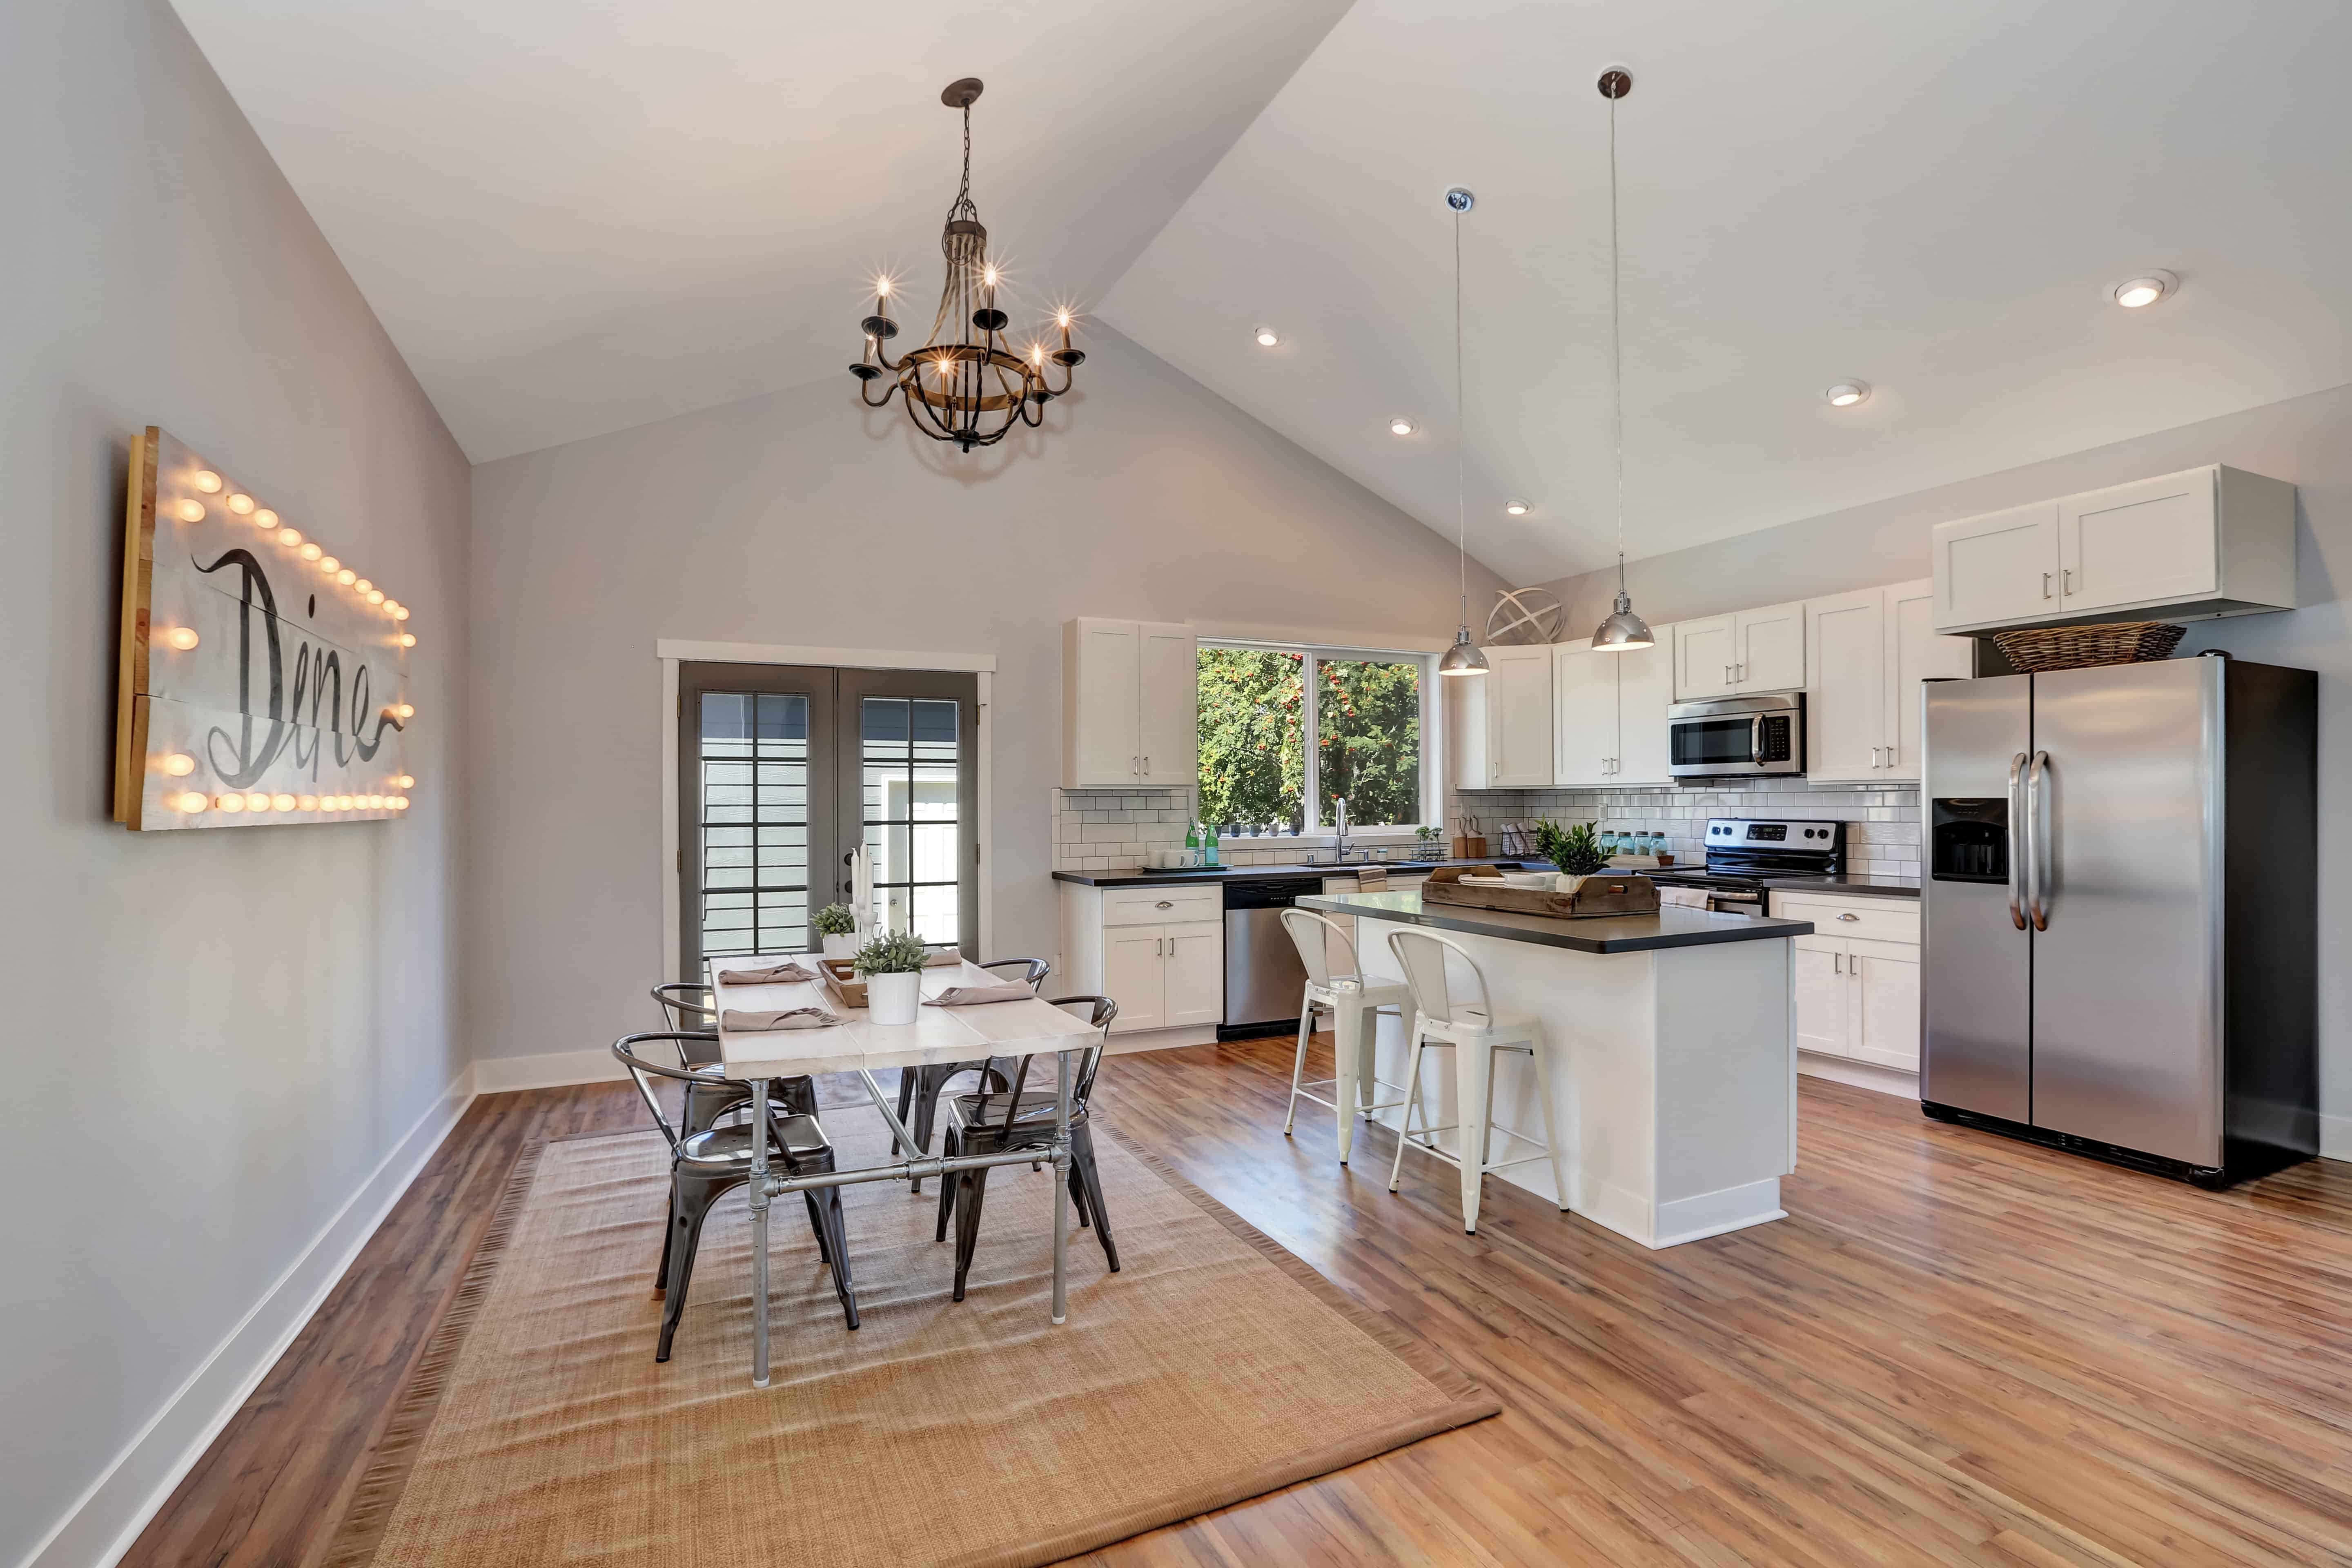 """An eat-in kitchen showcases hardwood flooring topped with a gray rug and white cathedral ceiling fitted with recessed and pendant lights. It is styled with a framed decor that says """"dine"""" surrounded with led lights."""